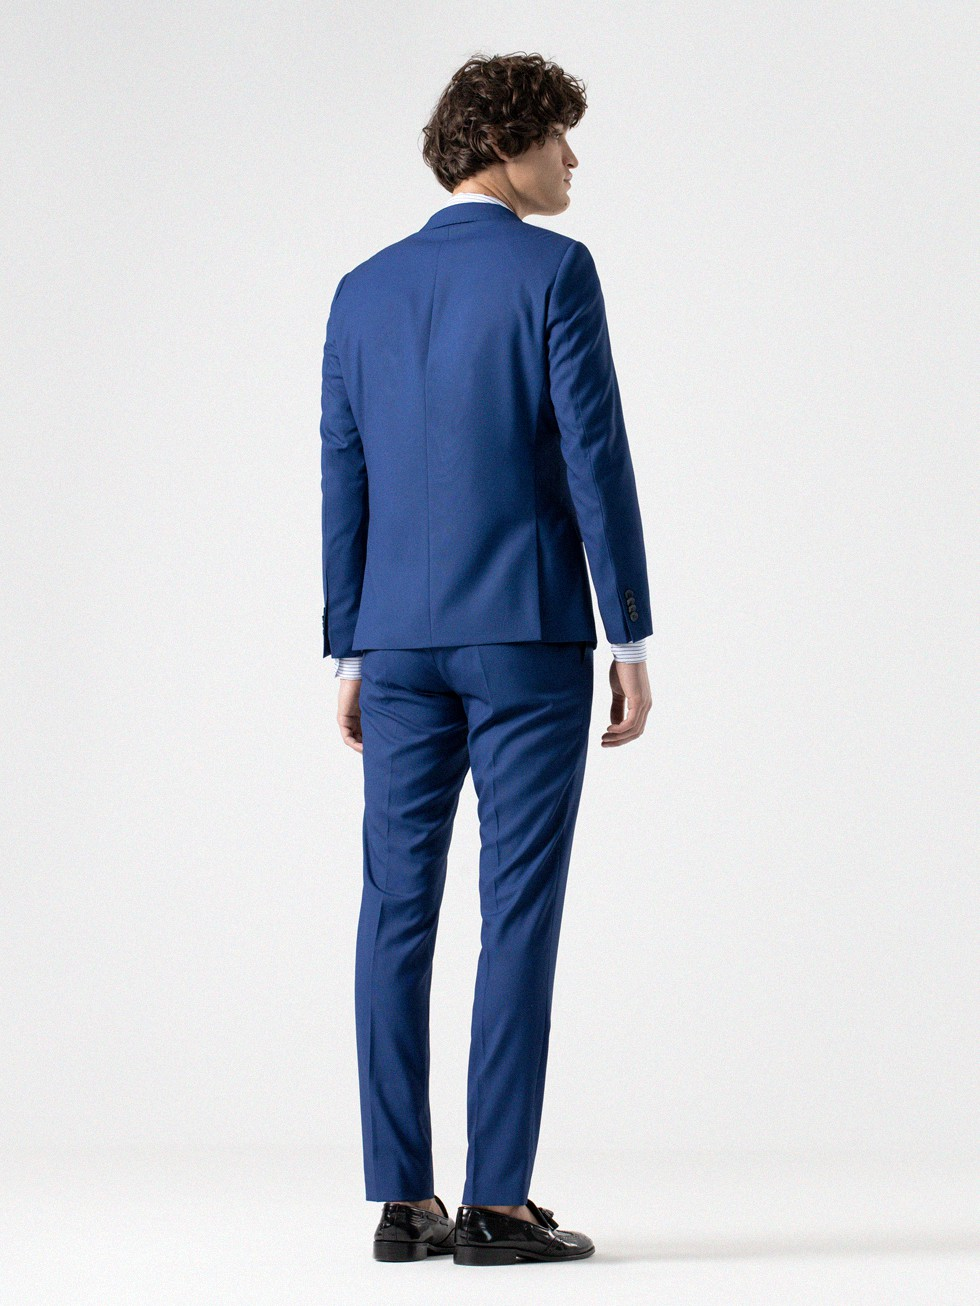 NAILHEAD DOBBY-WEAVE INK BLUE SUIT